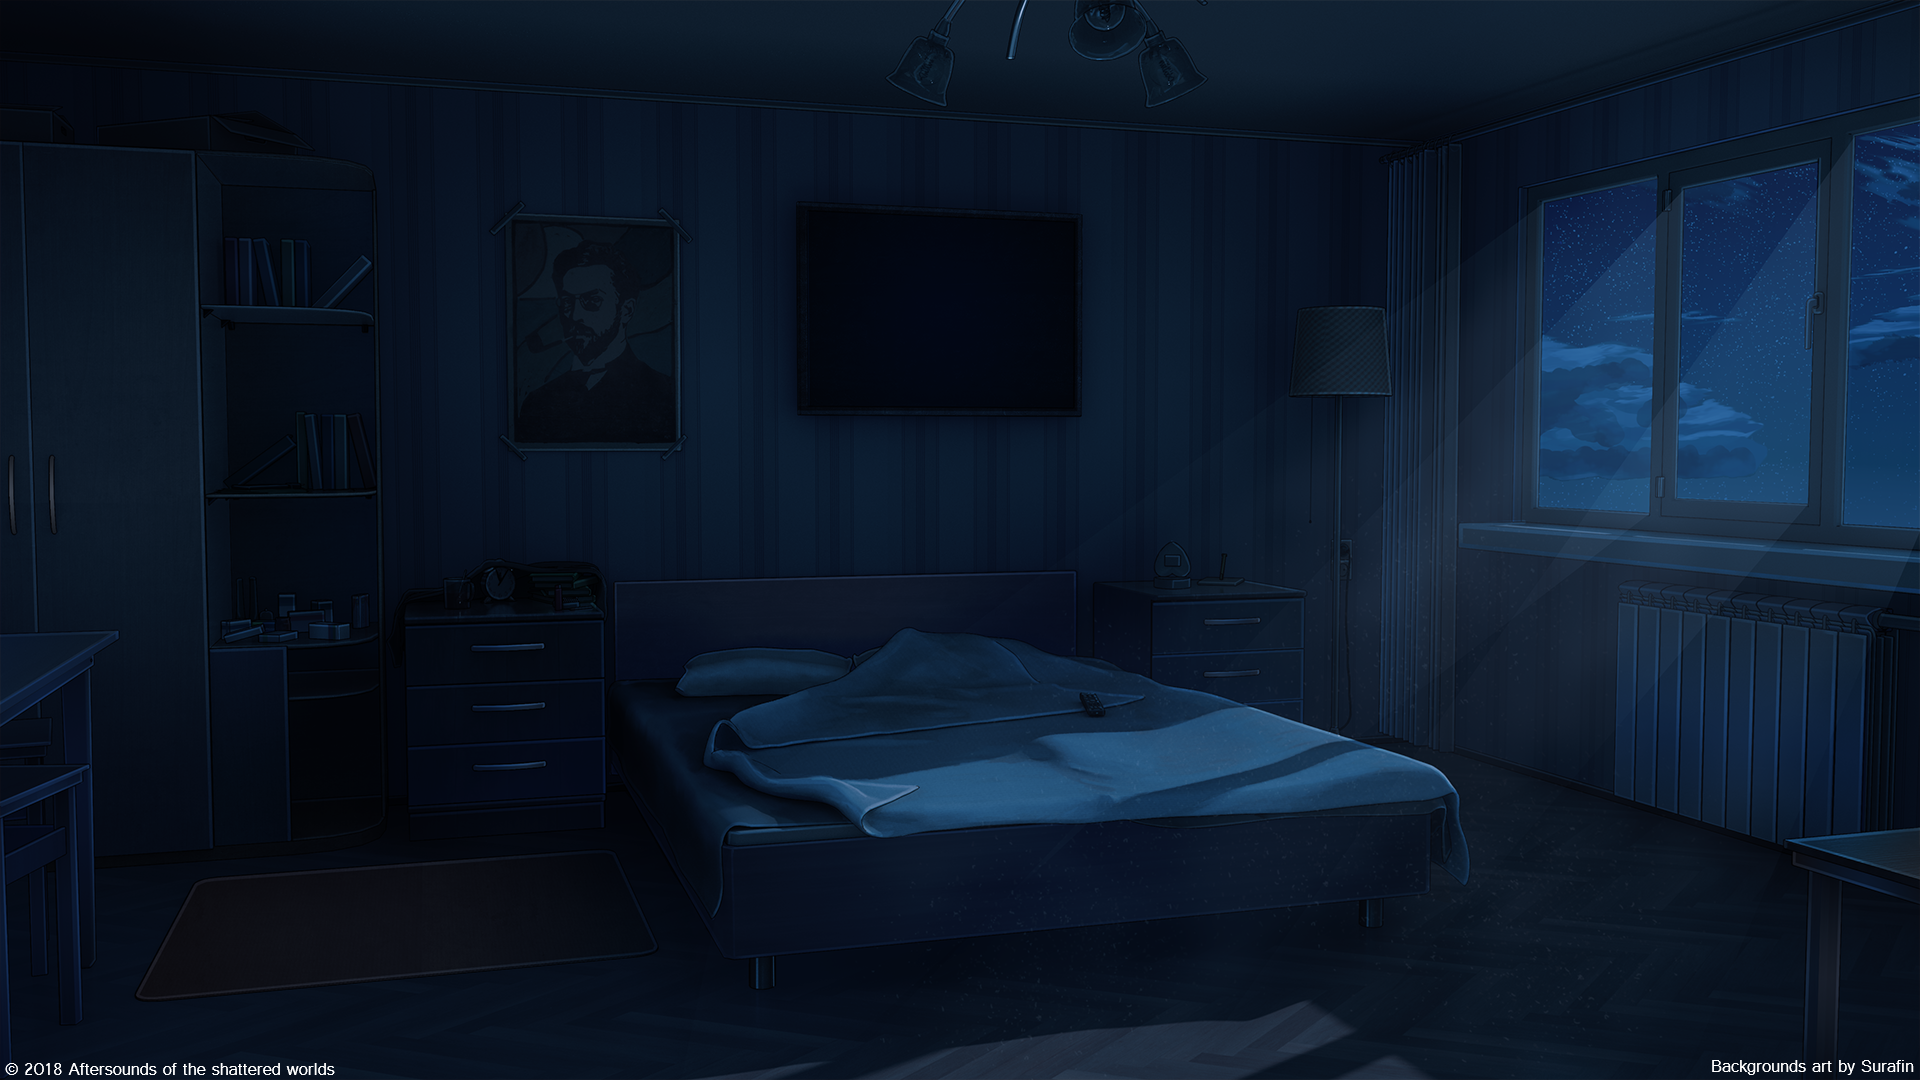 Bedroom Night By Surafin On Deviantart